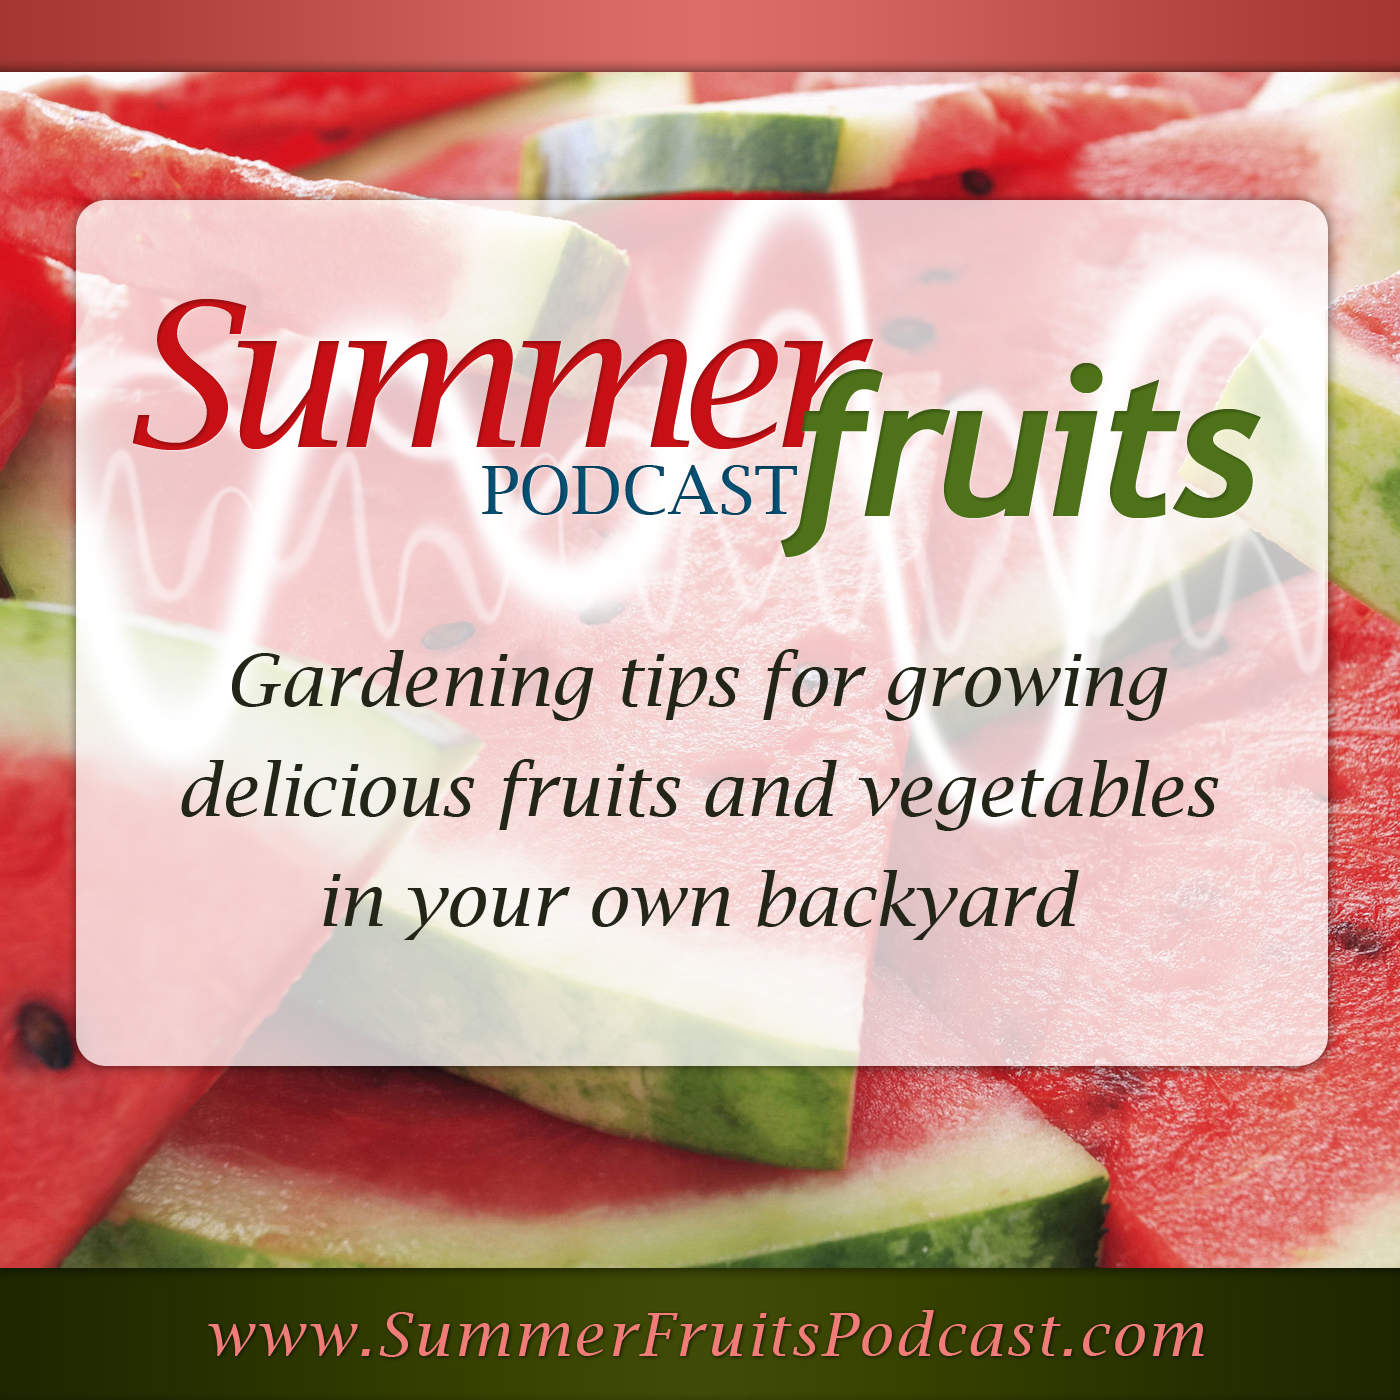 Summer Fruits Podcast